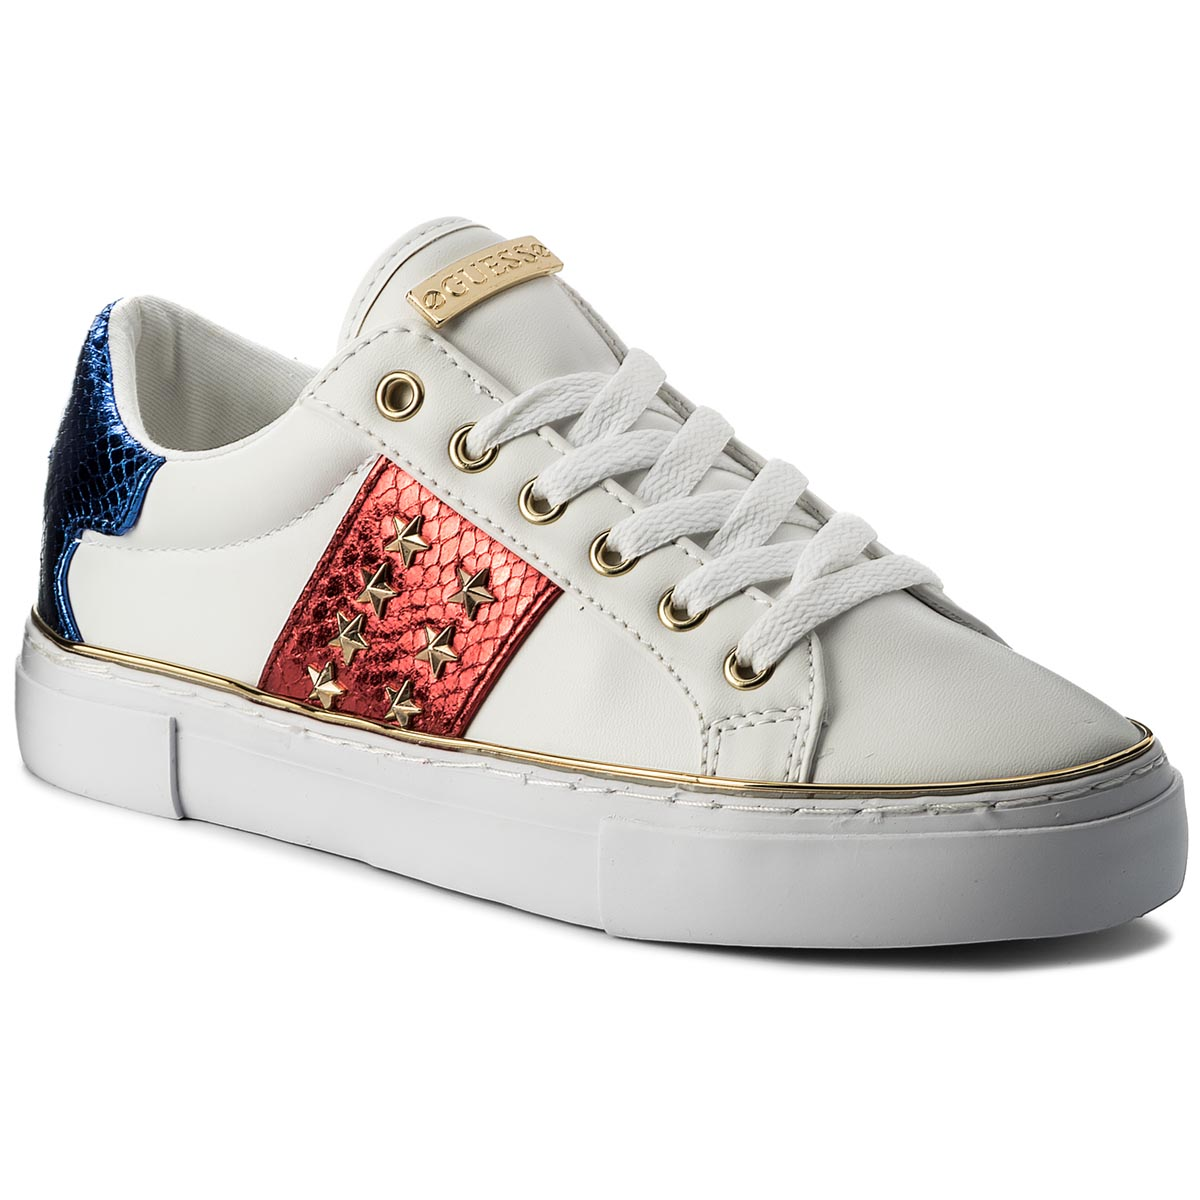 Sneakers GUESS - Gamer FLGAM1 ELE12 WHIRE